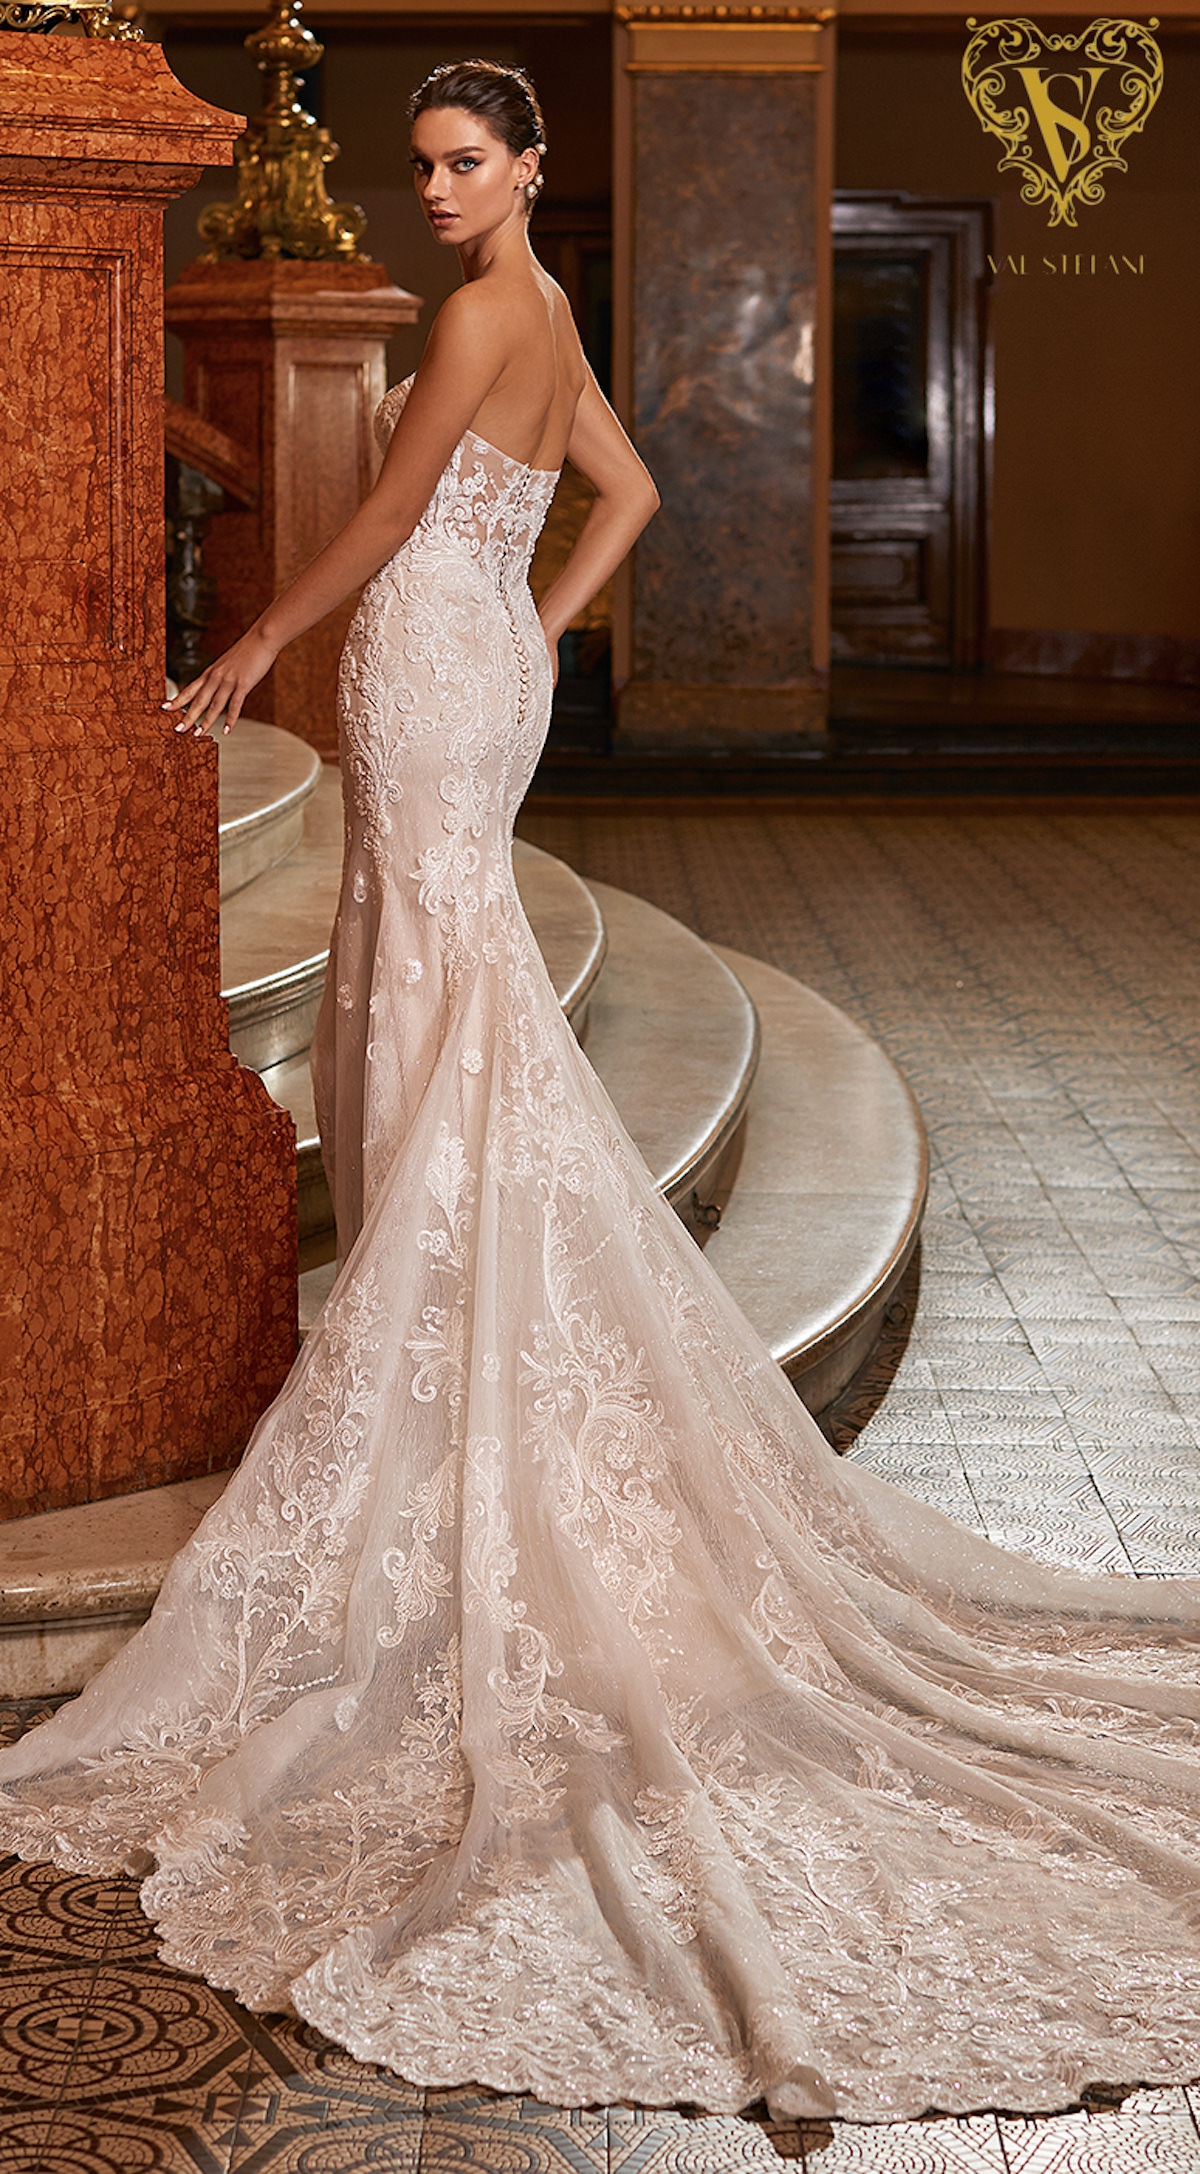 Val Stefani Wedding Dresses Fall 2021 - Opus Collection - Diva – Style D8273